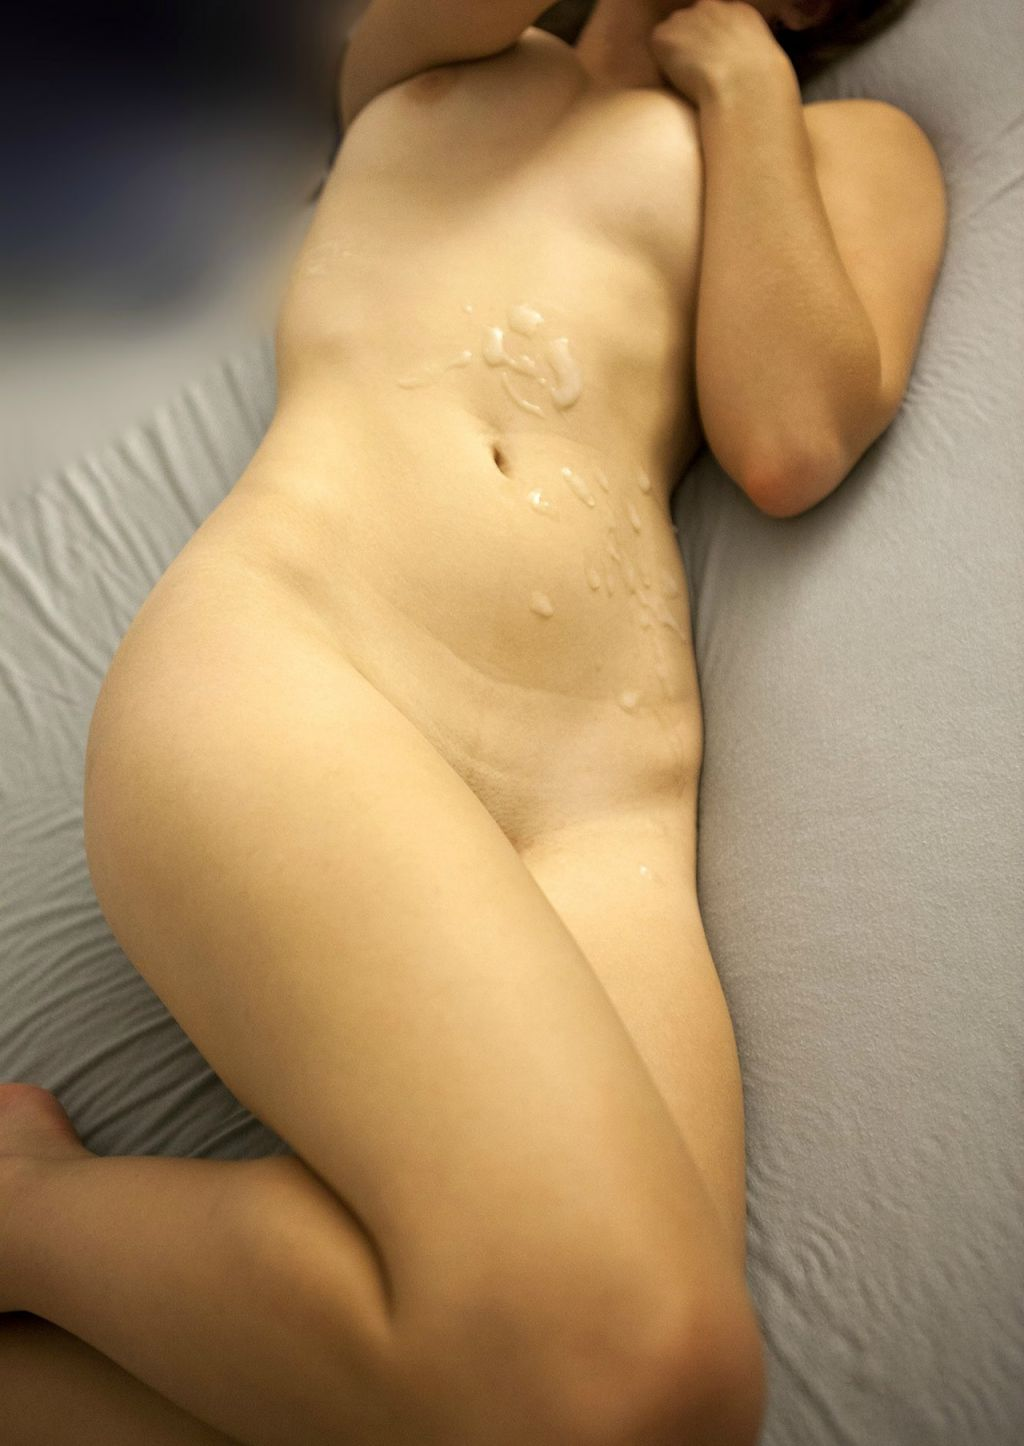 belly woman panties Shaved